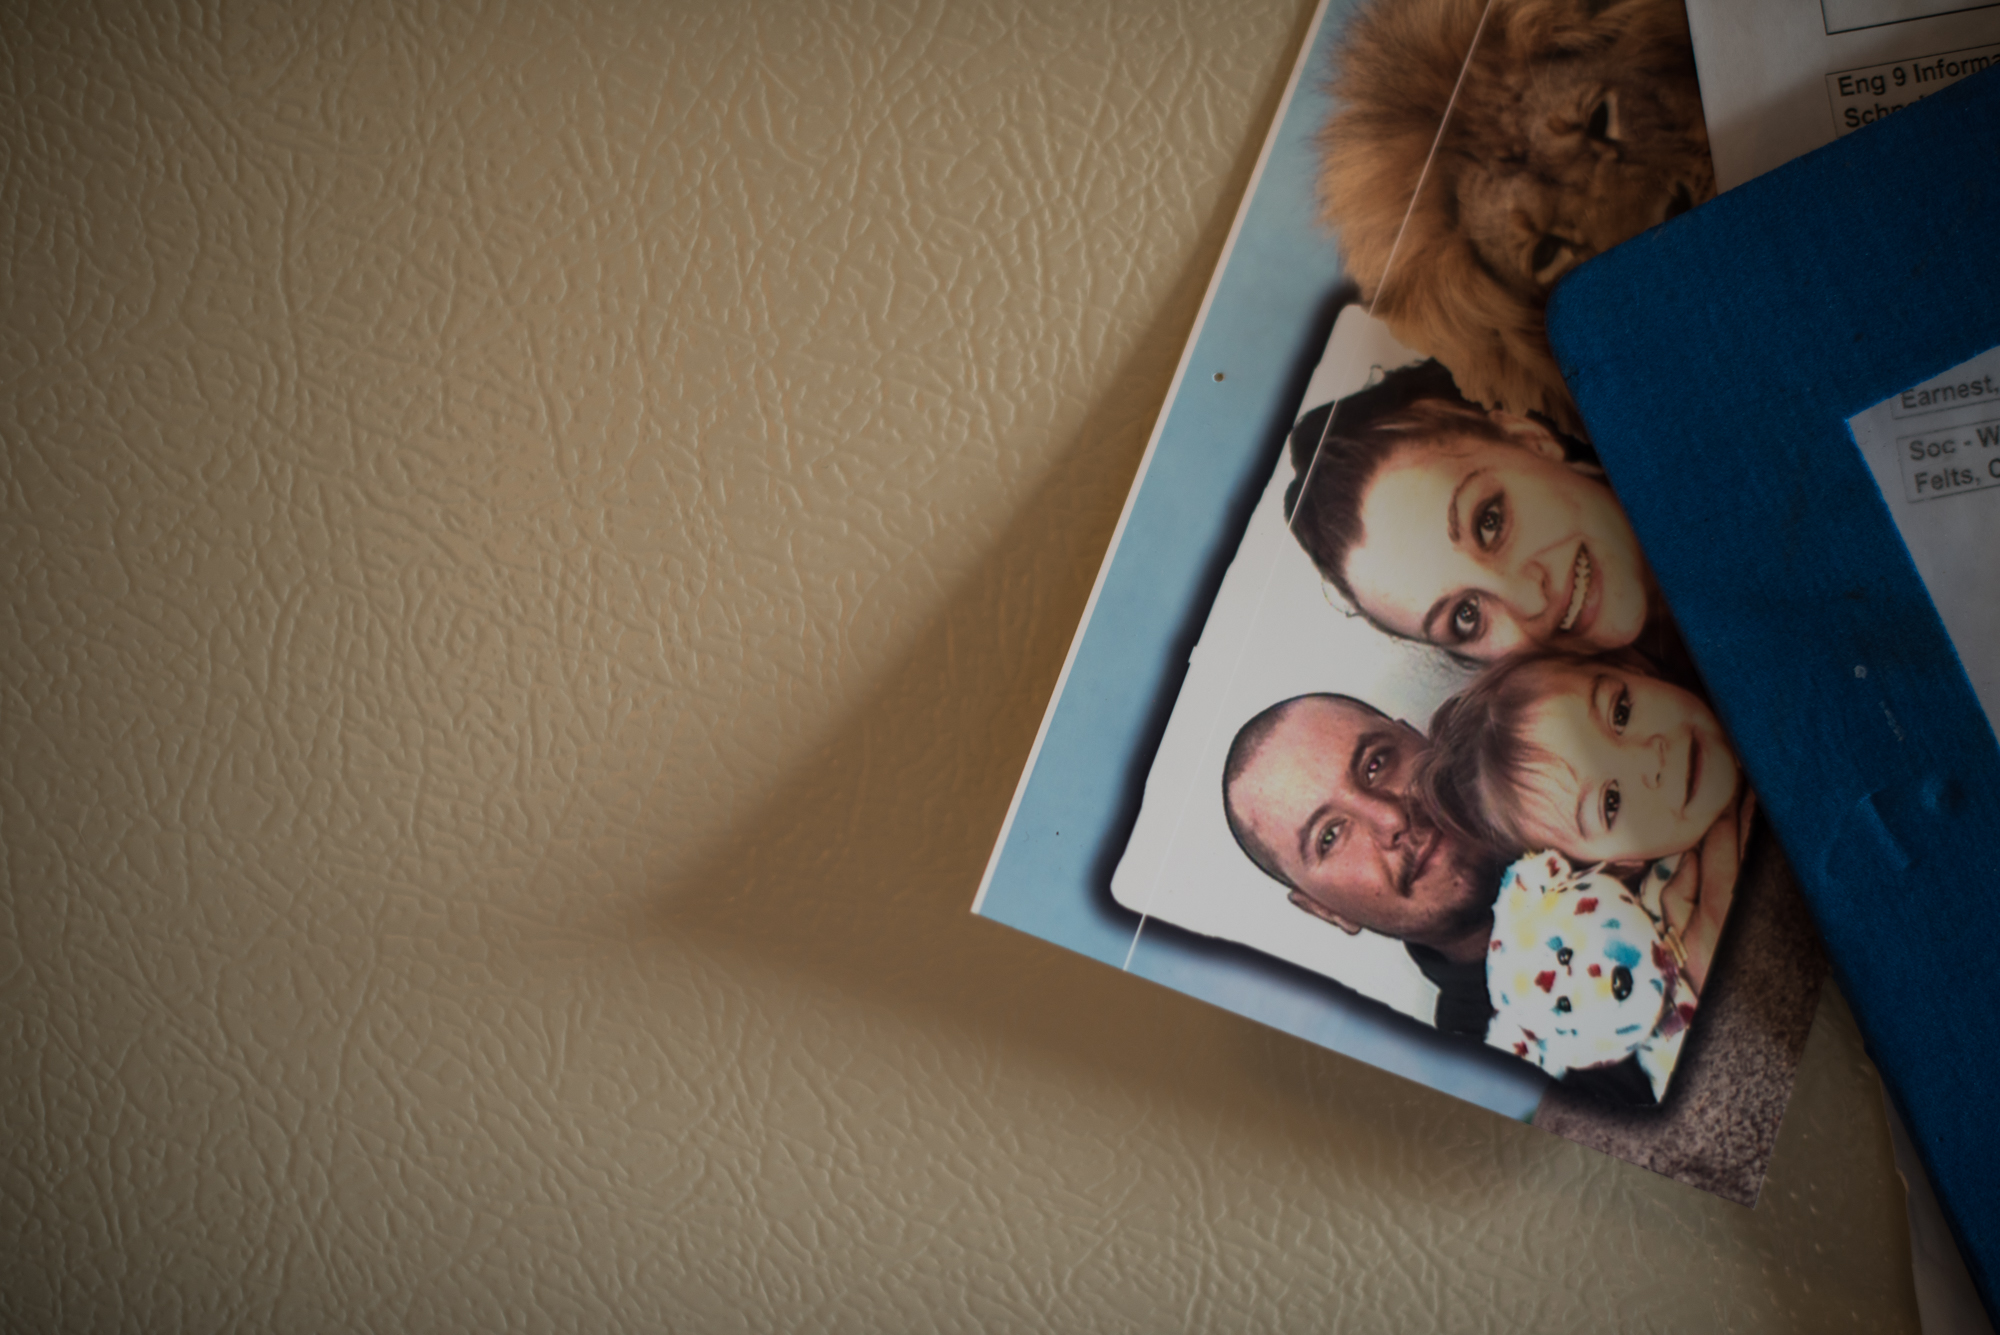 A family photo taken at the zoo on the family's refrigerator door.